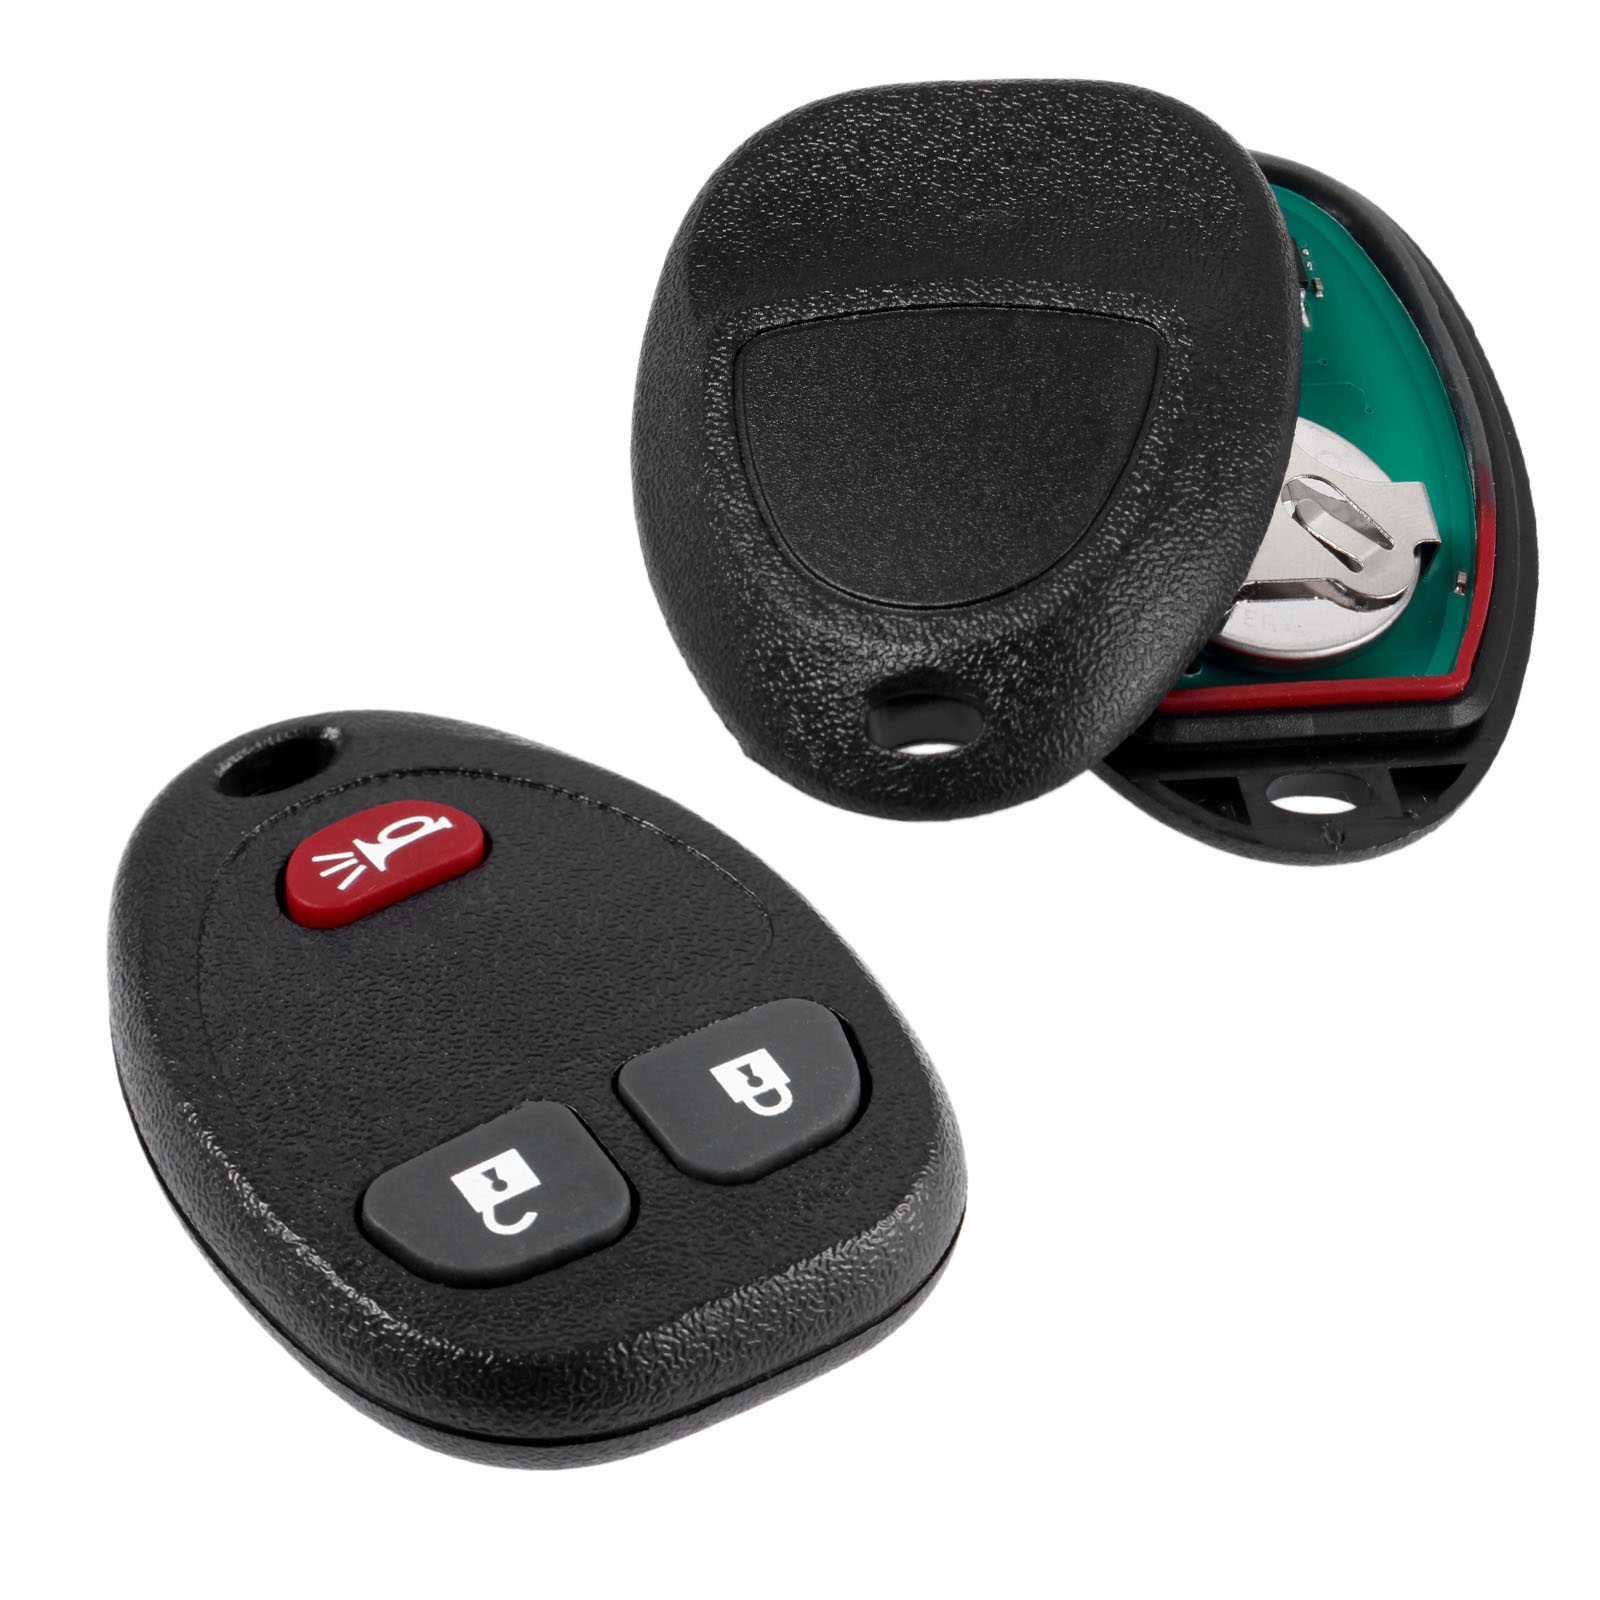 Replacement For Chevy 2006-2011 HHR Uplander Remote Start Car Key Fob 3 Button